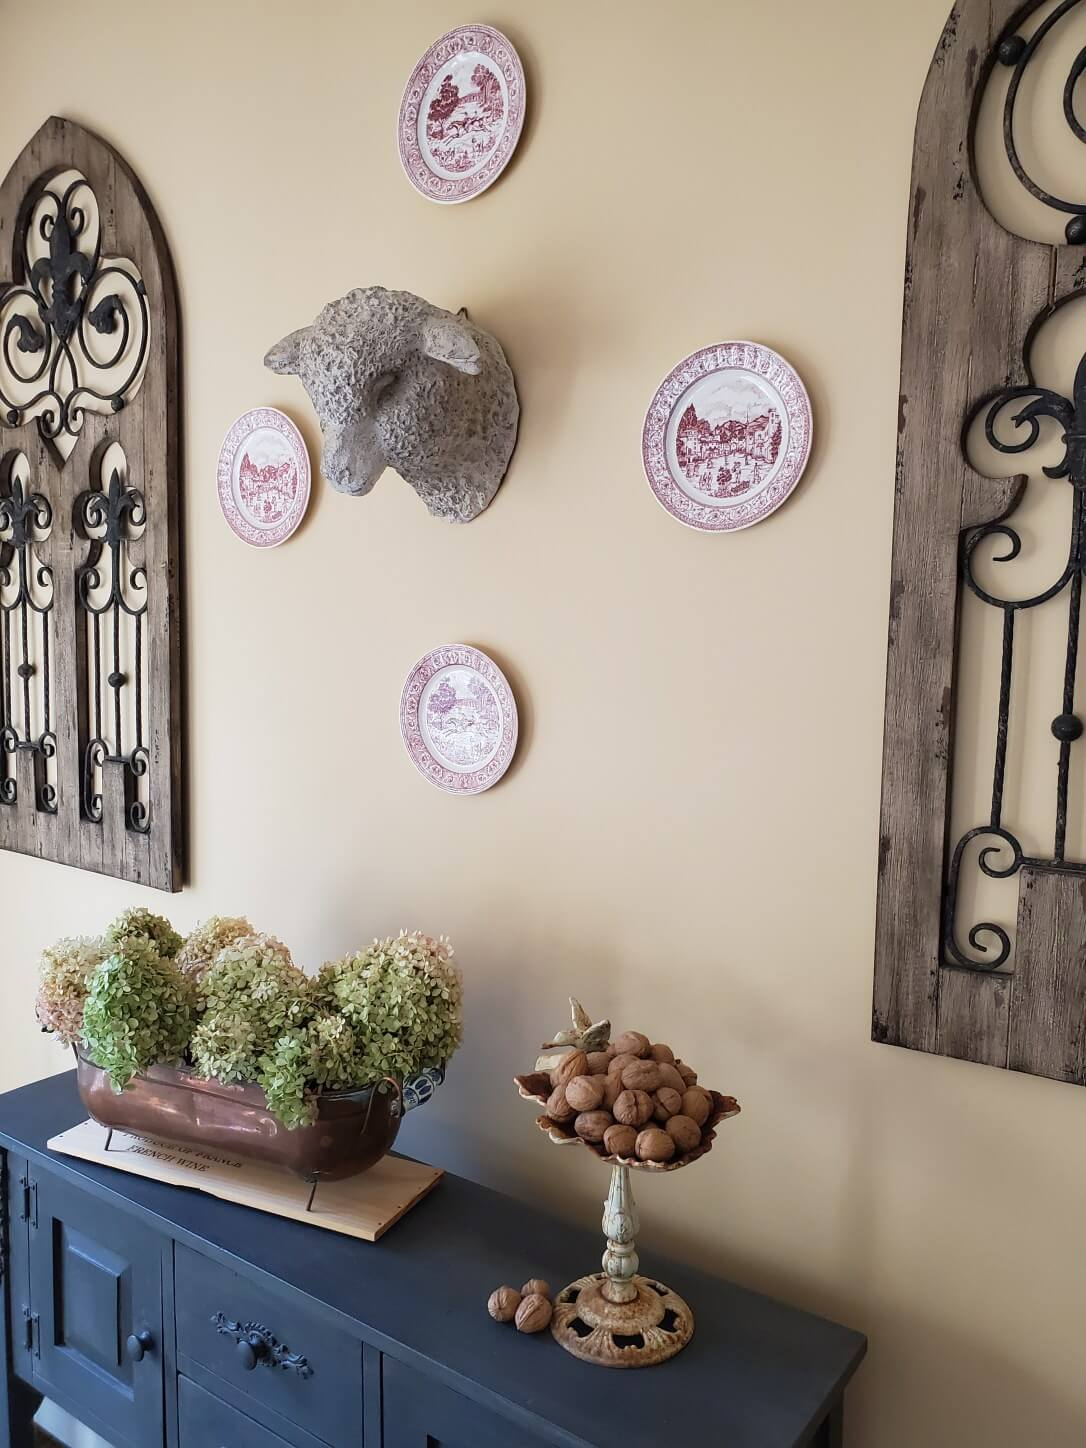 Rustic Old World Charm Home Decor